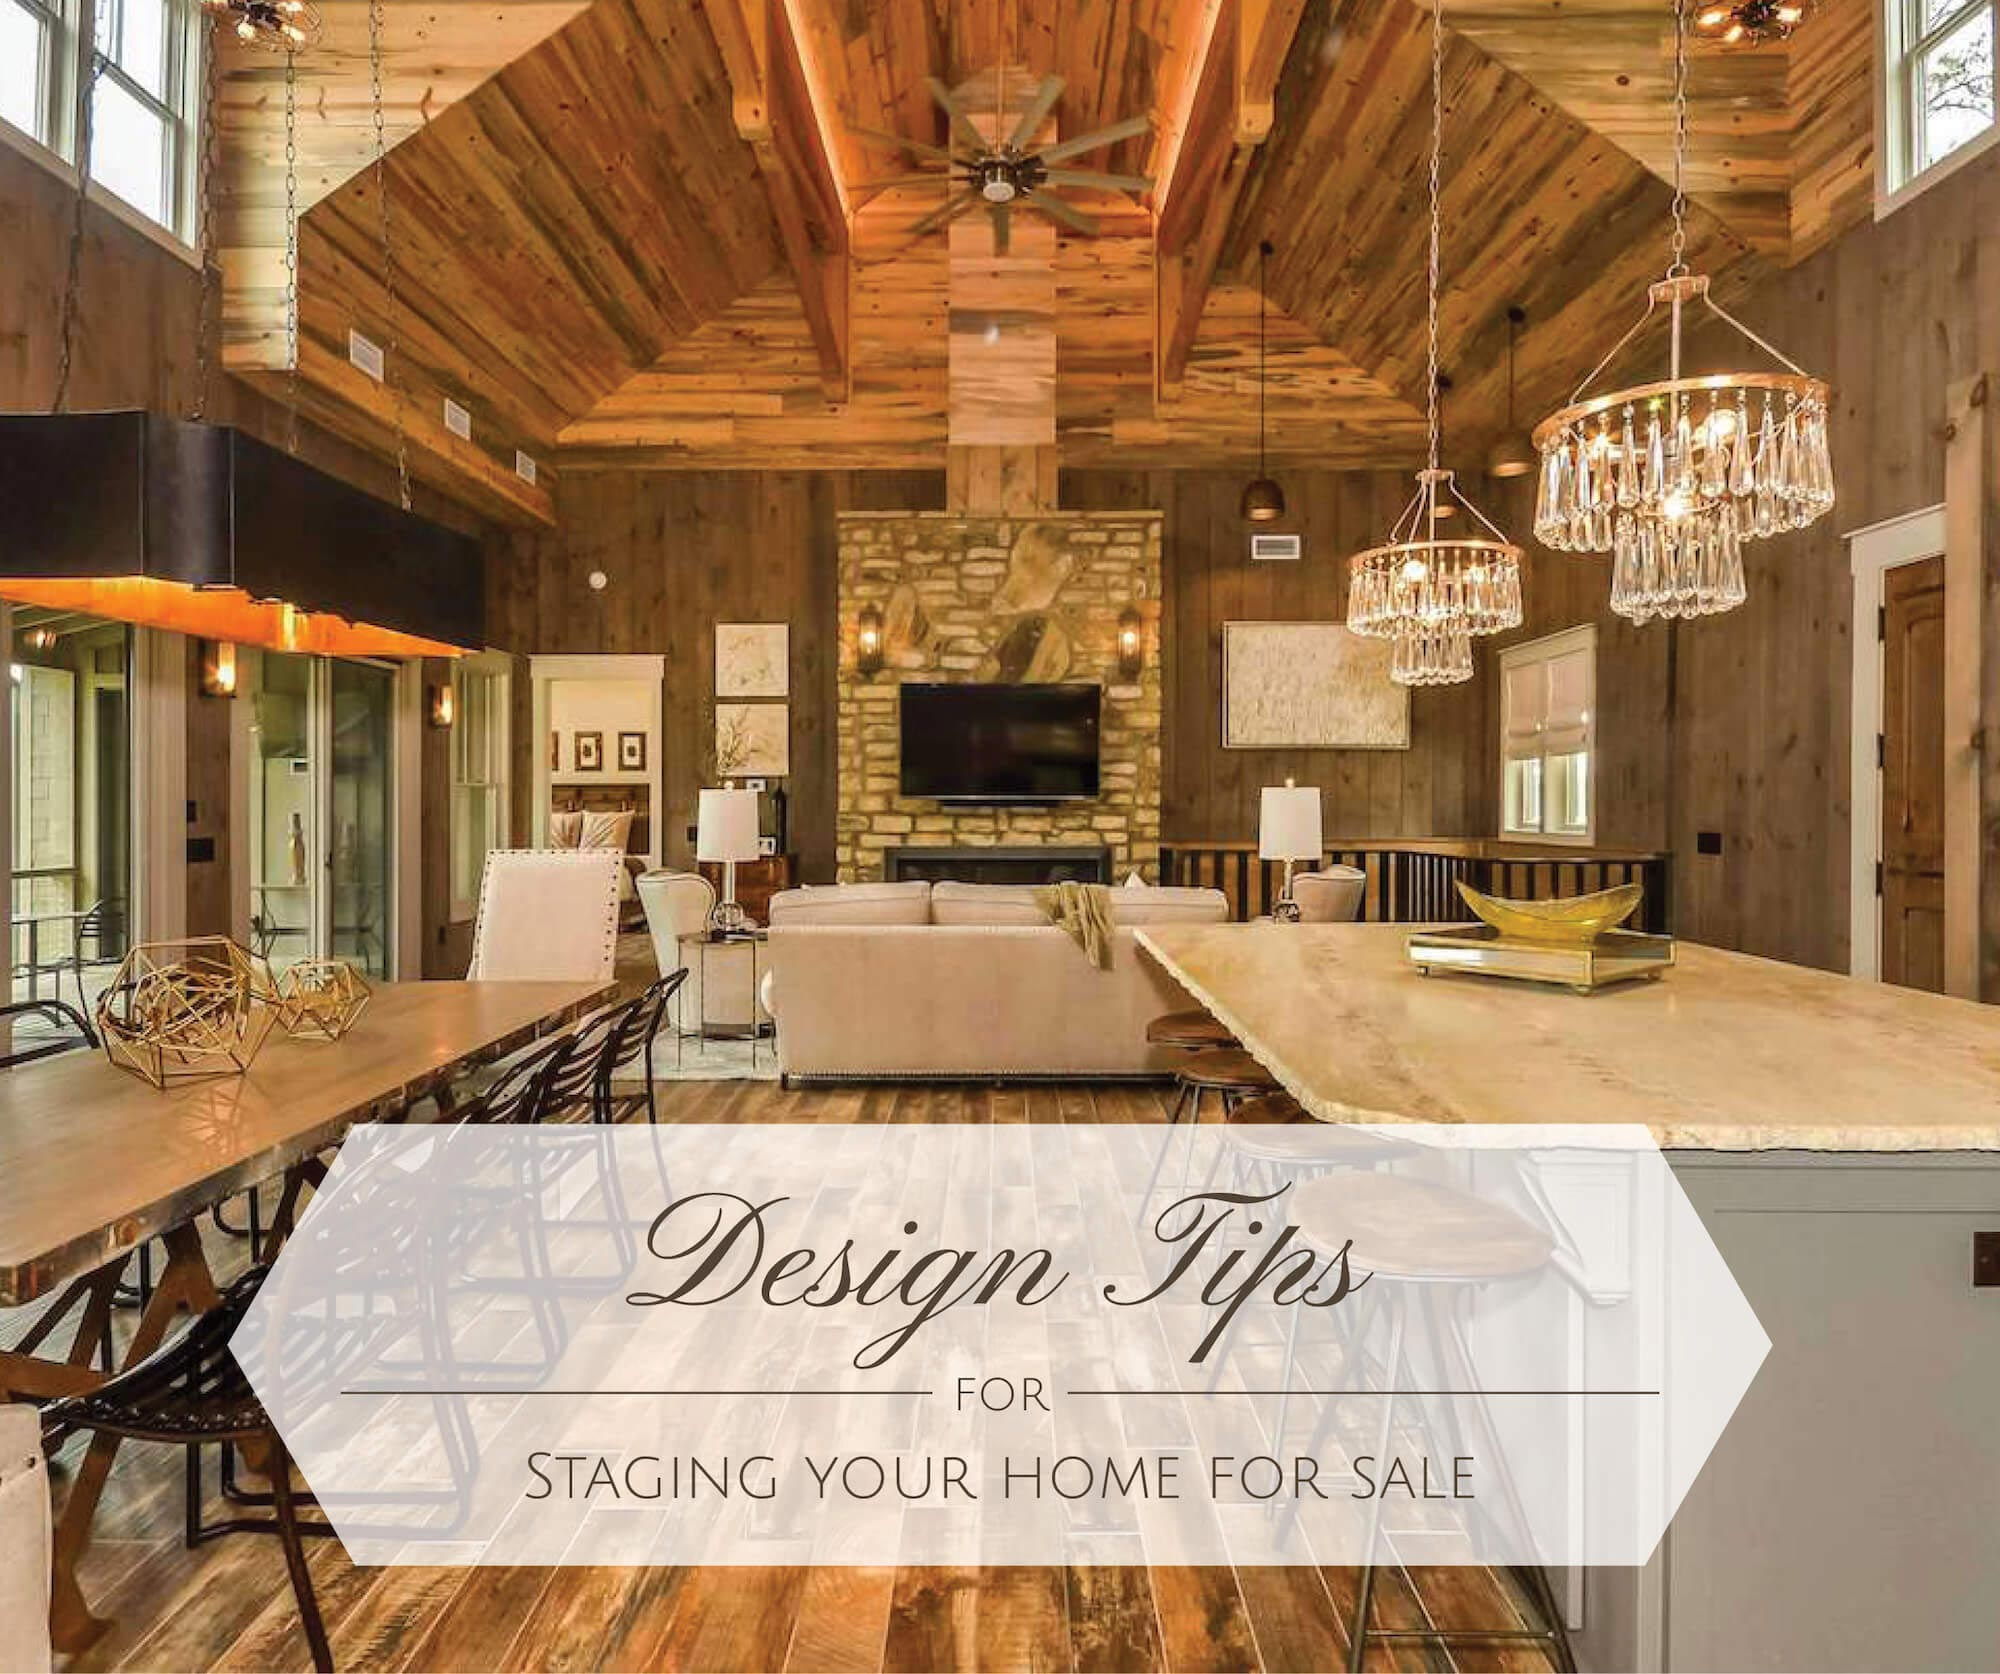 Design Tips for staging your home for sale